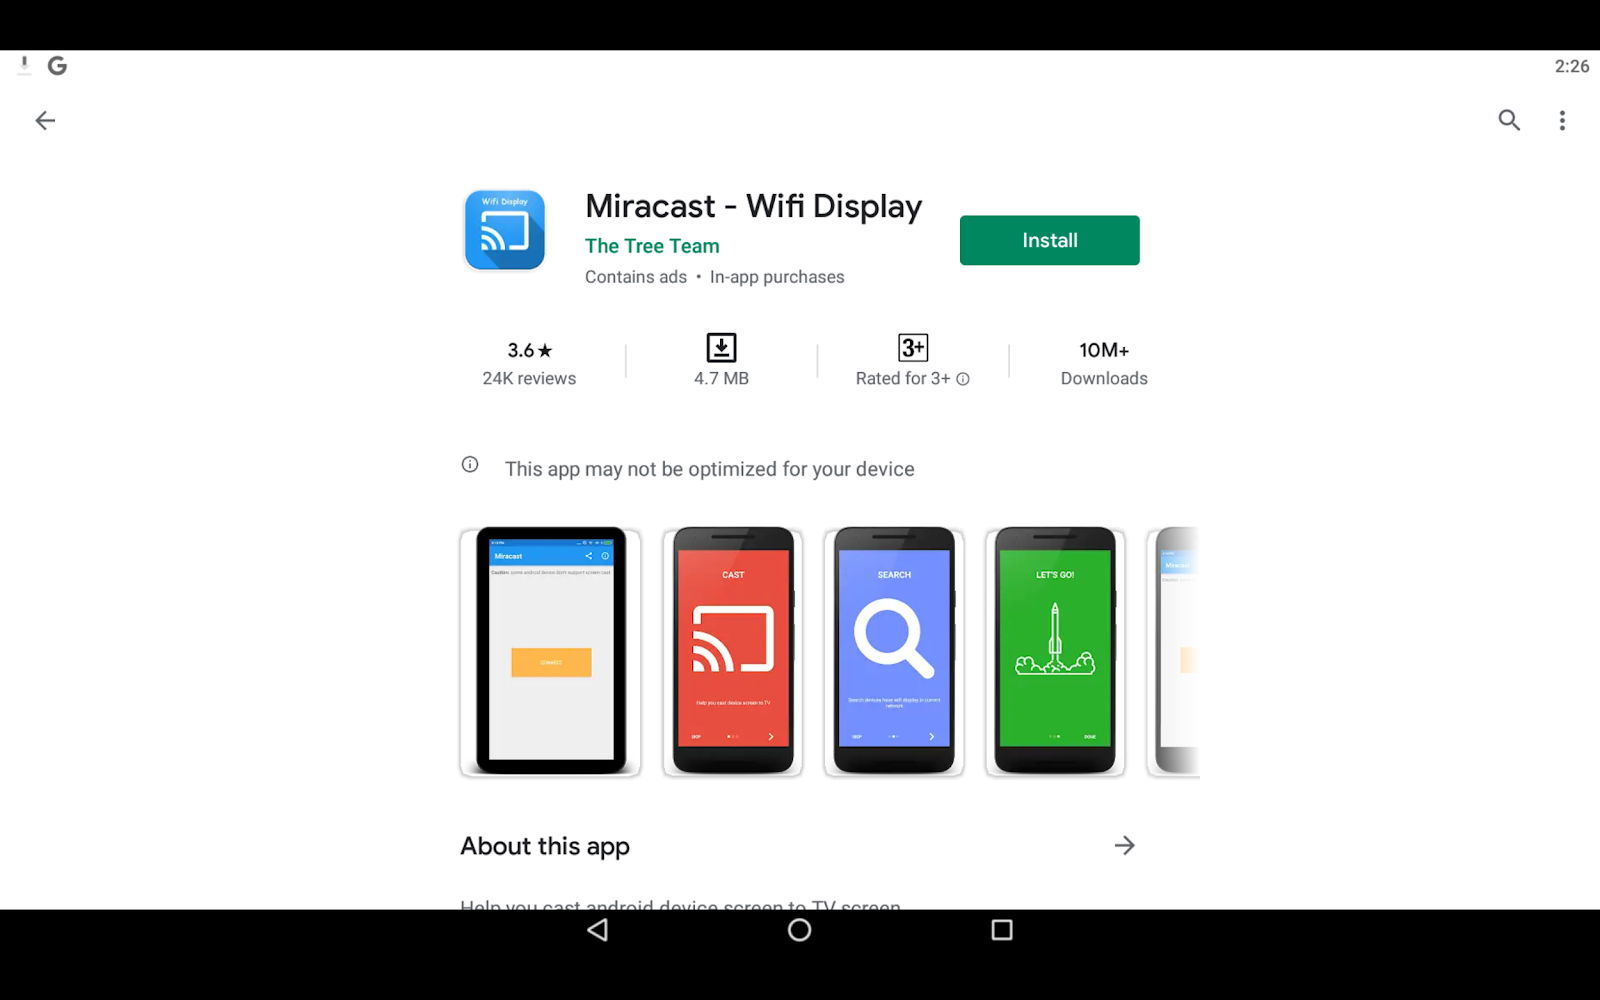 Miracast app on PC download menu